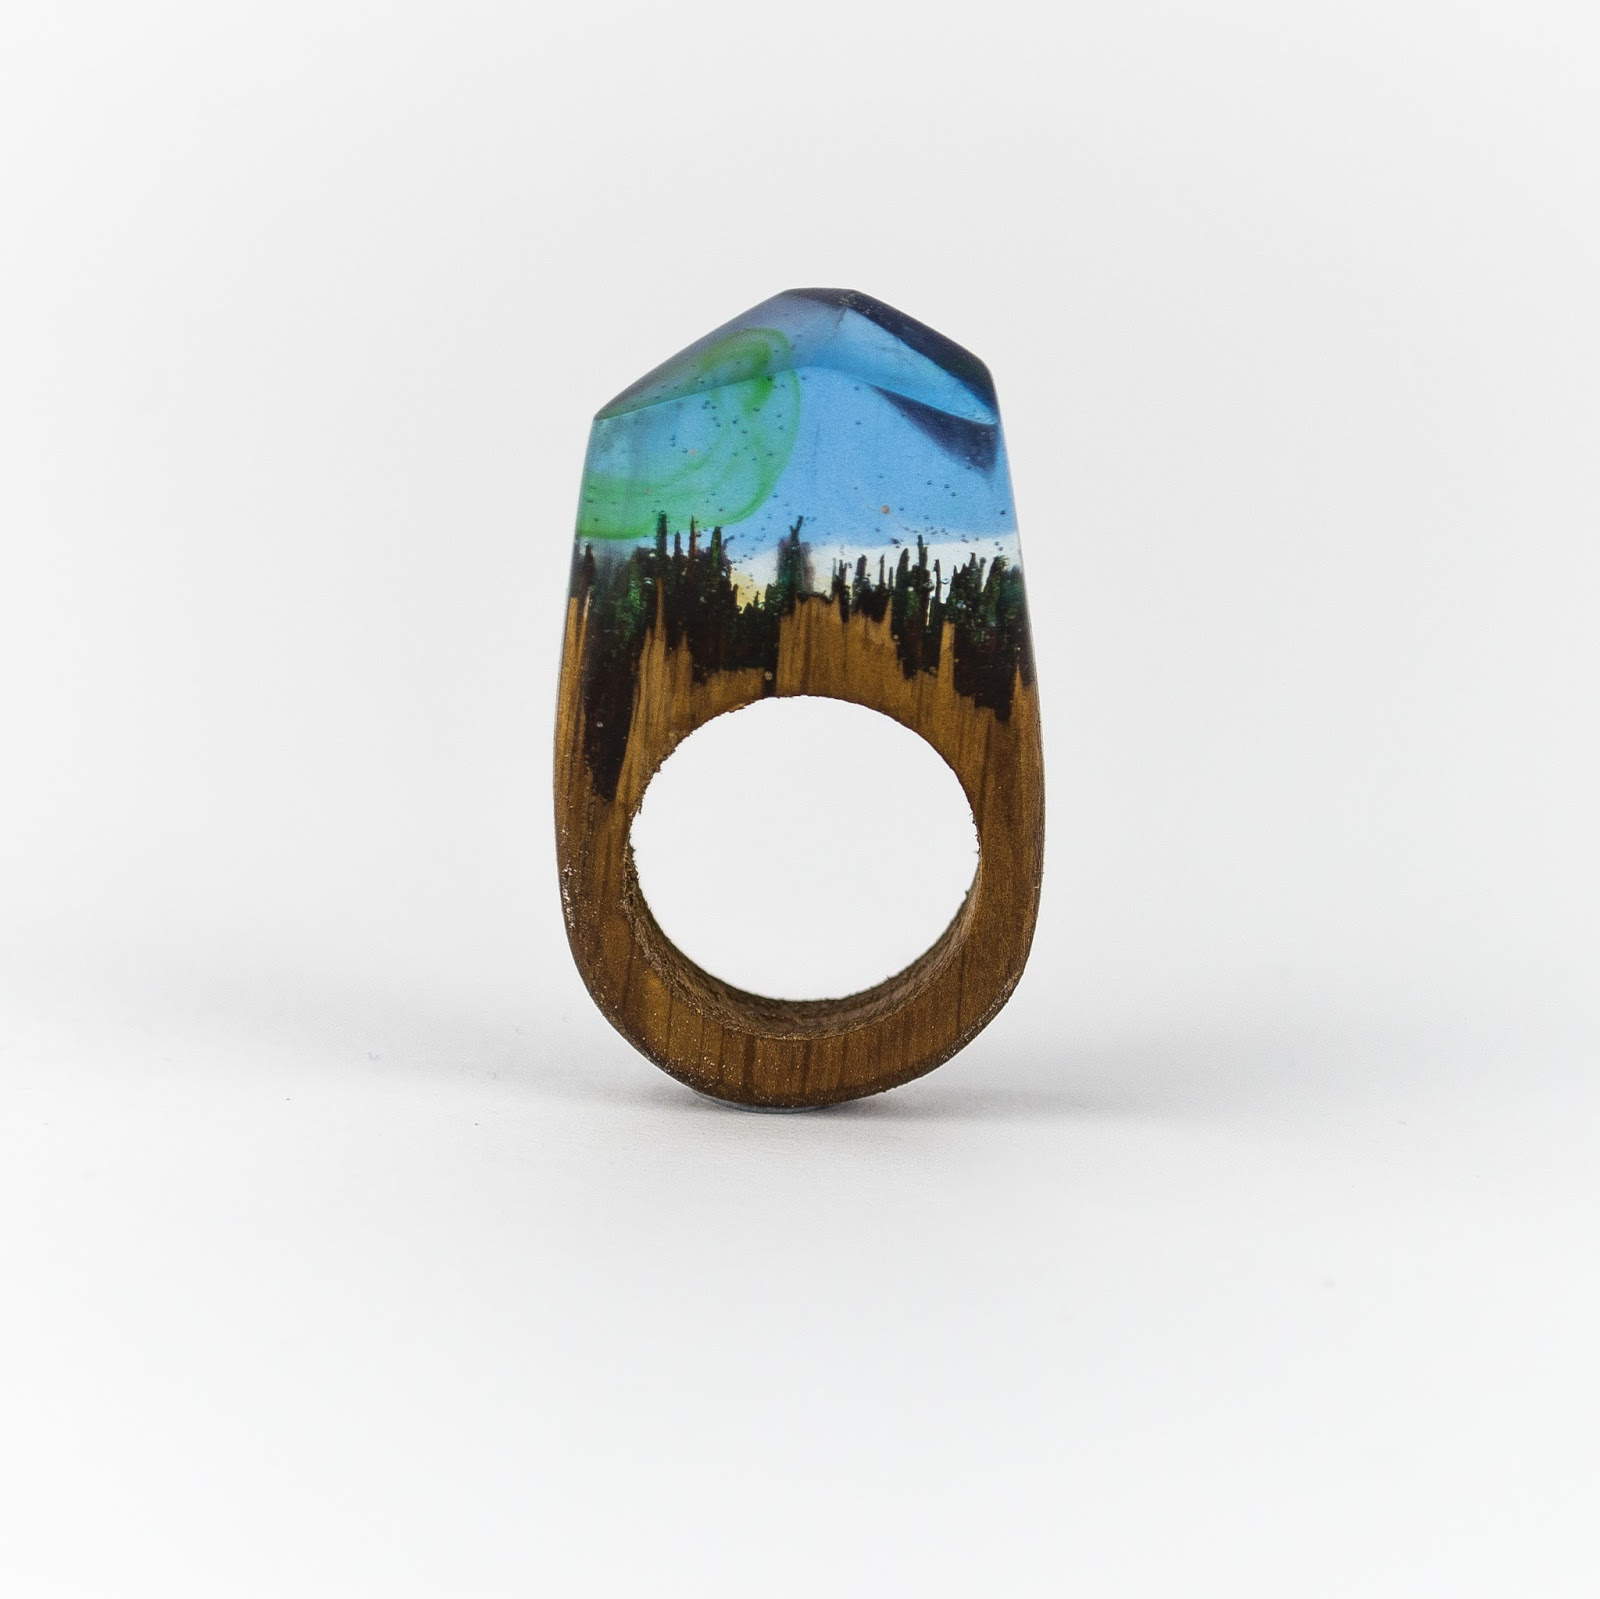 OKTIE Northen Lights Wood Resin Ring HandMade Wooden Gift For Her Box Free Engraving